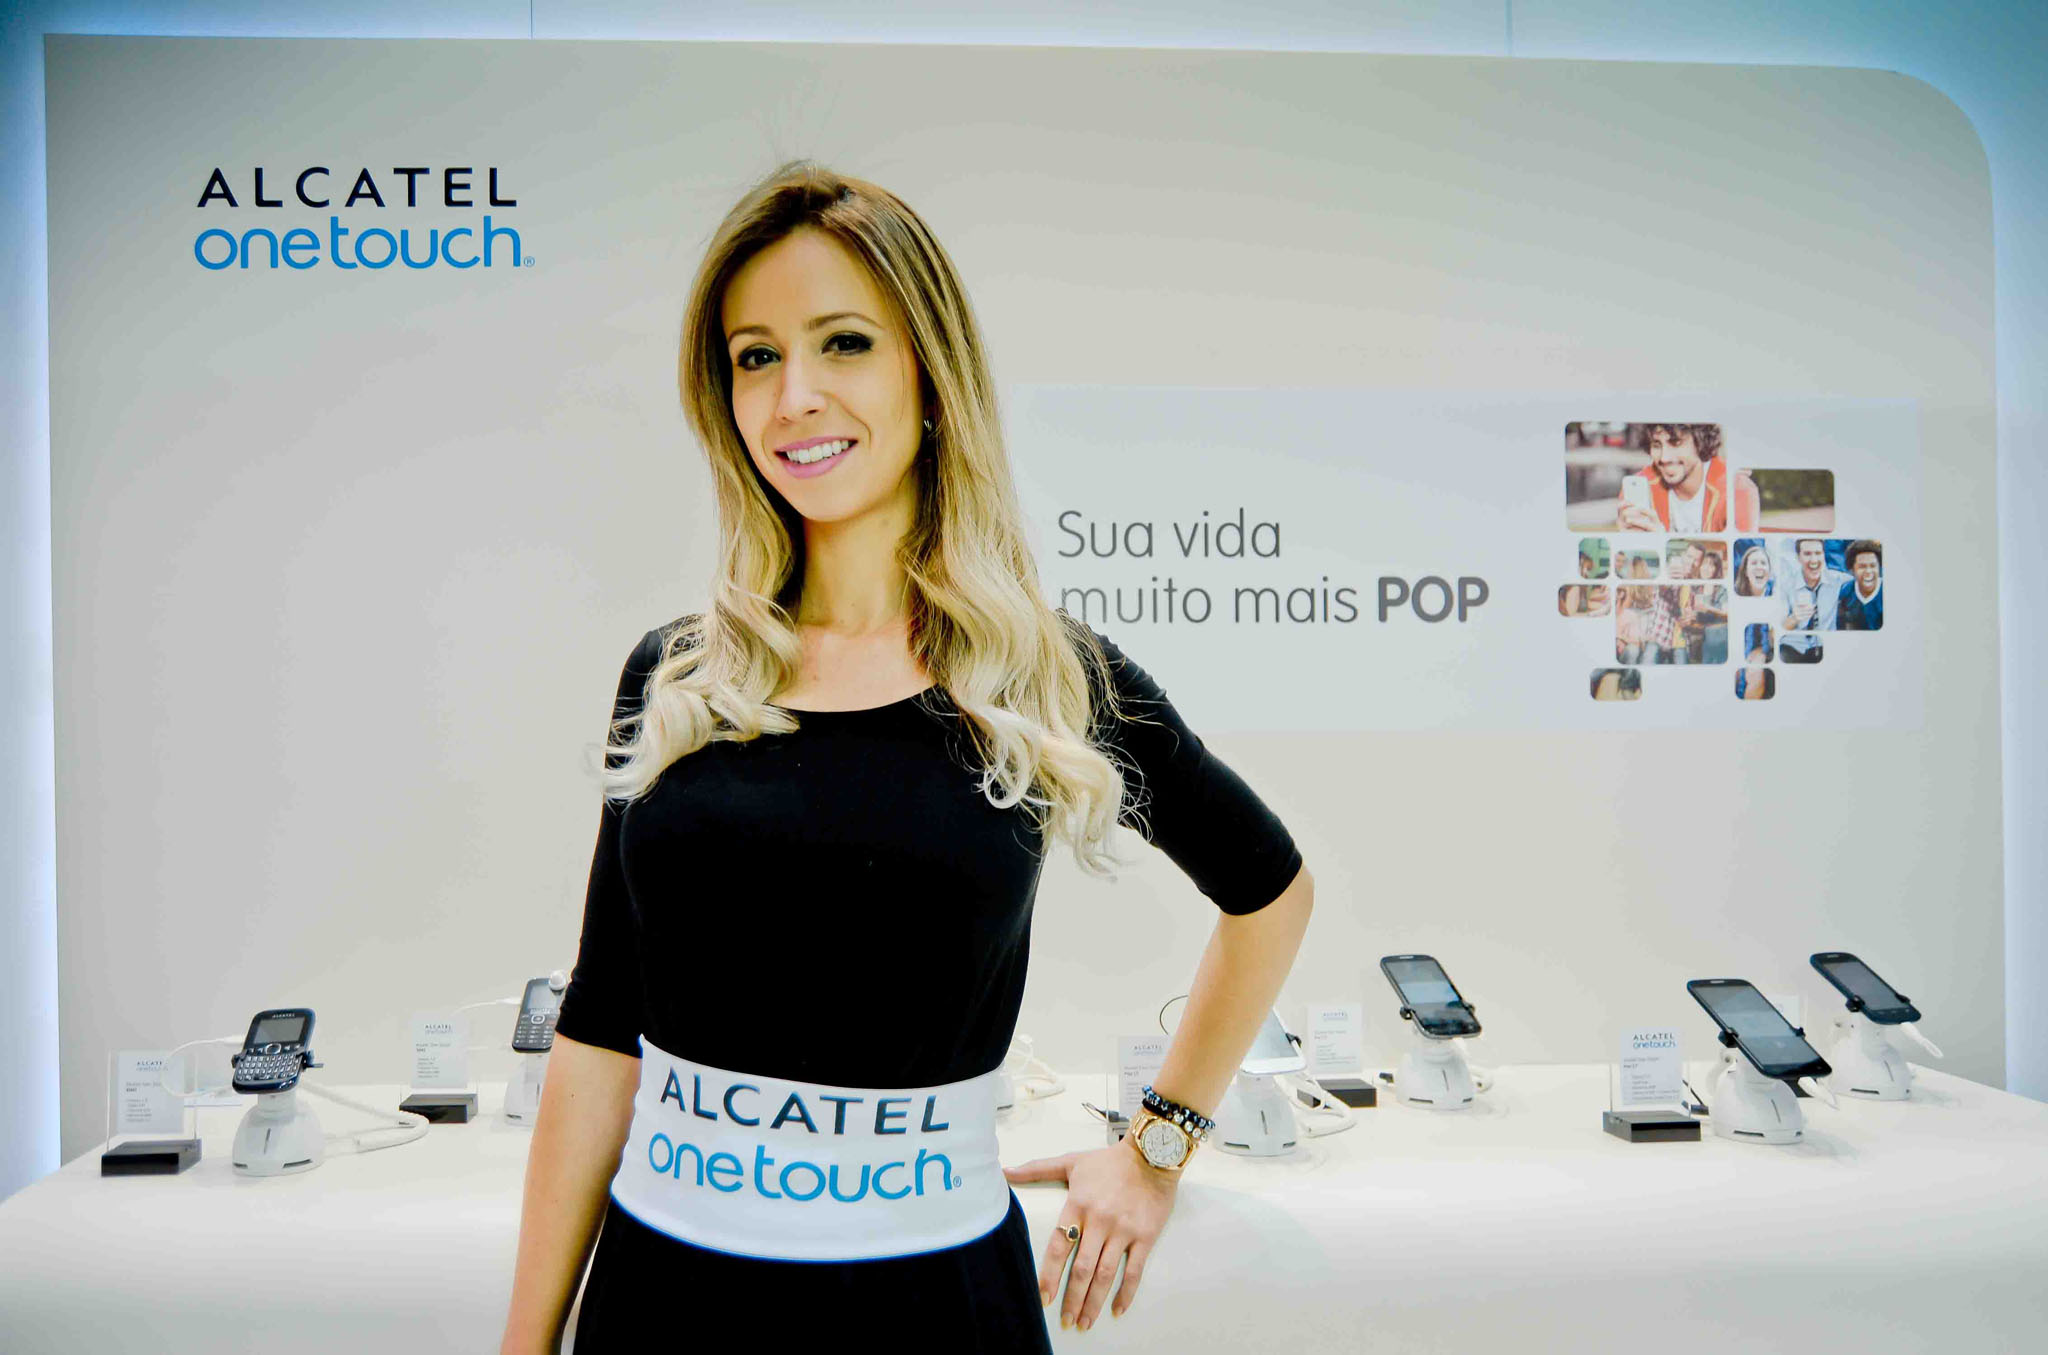 Alcatel na Feira Eletrolar News - 6